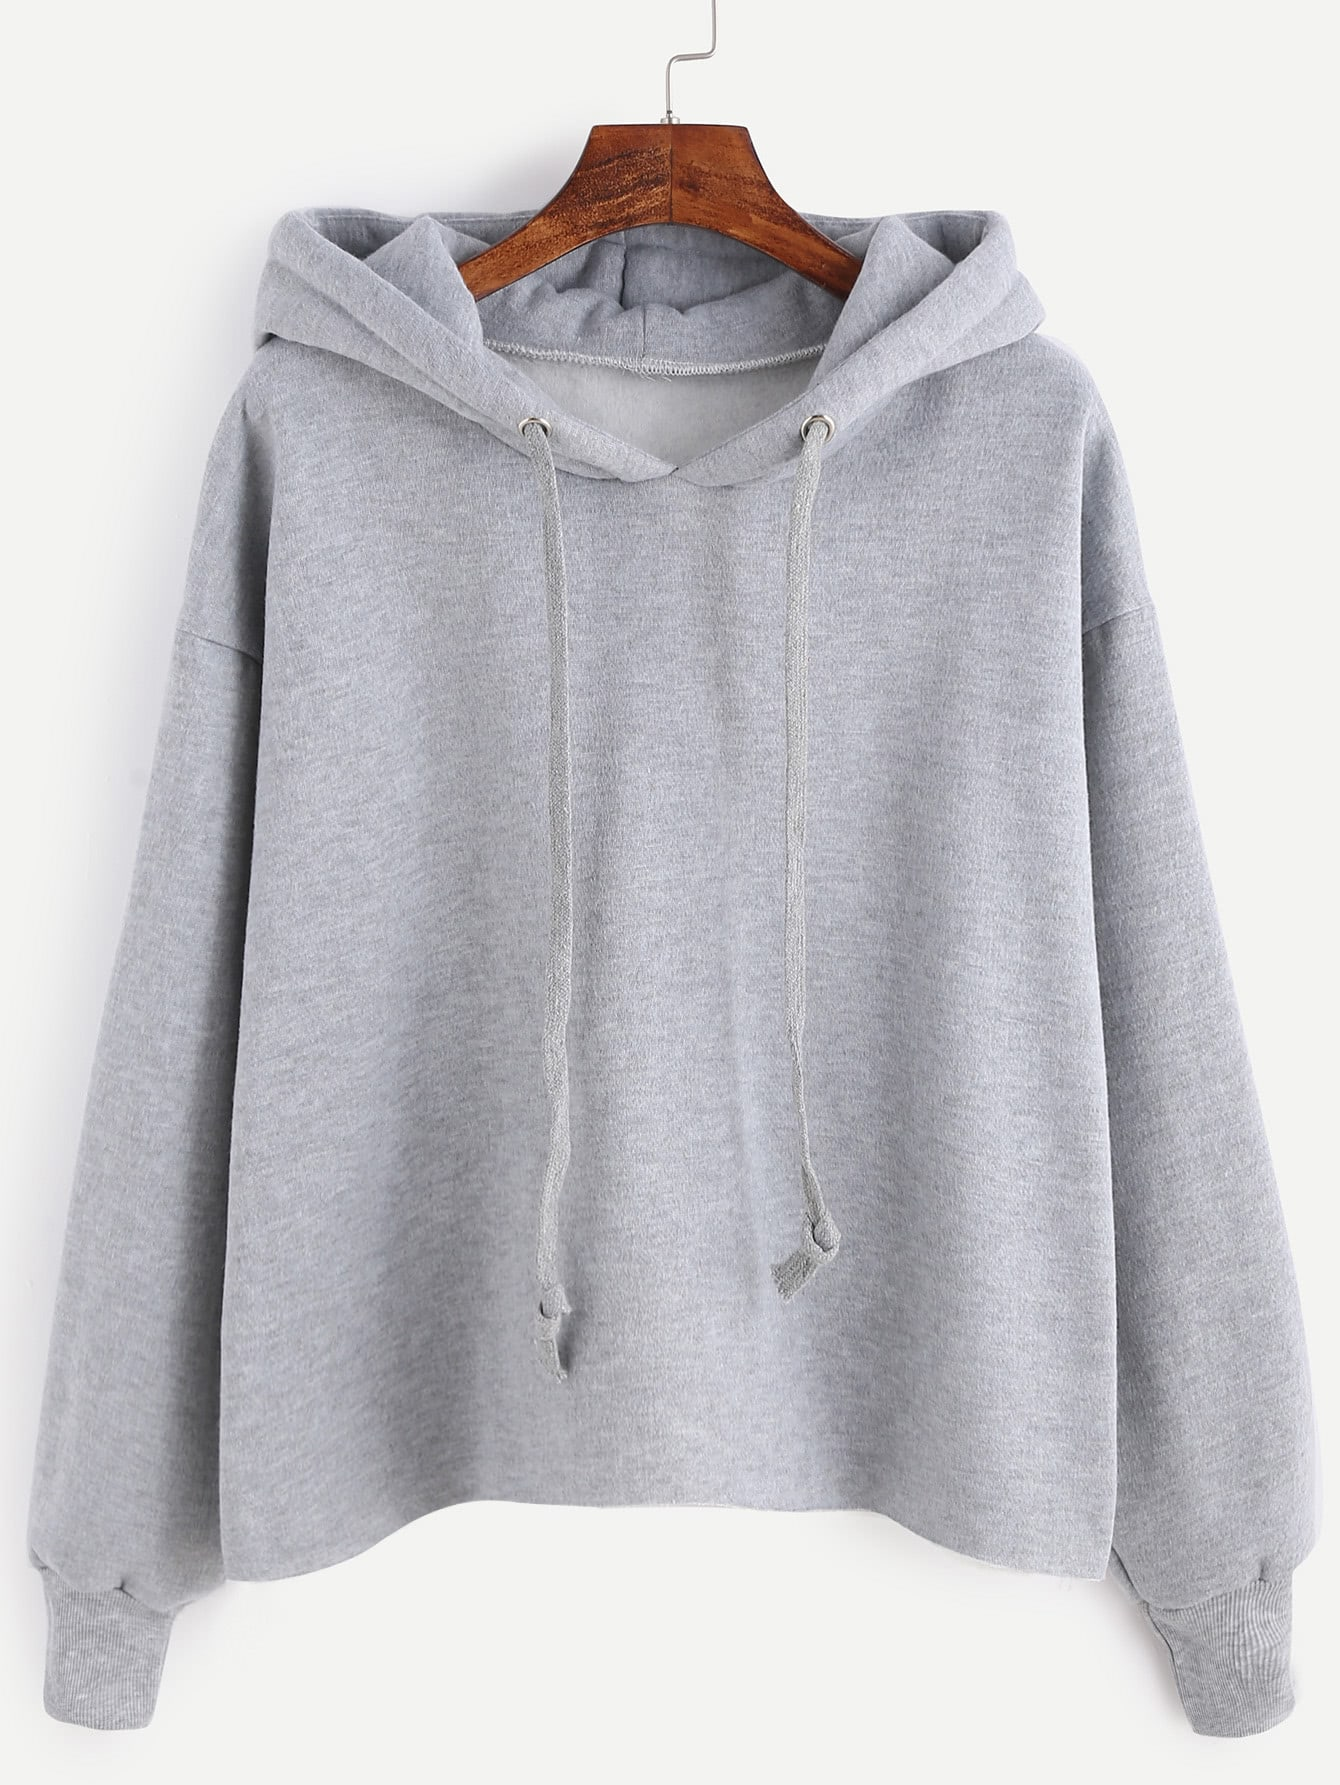 Grey Drawstring Hooded Sweatshirt